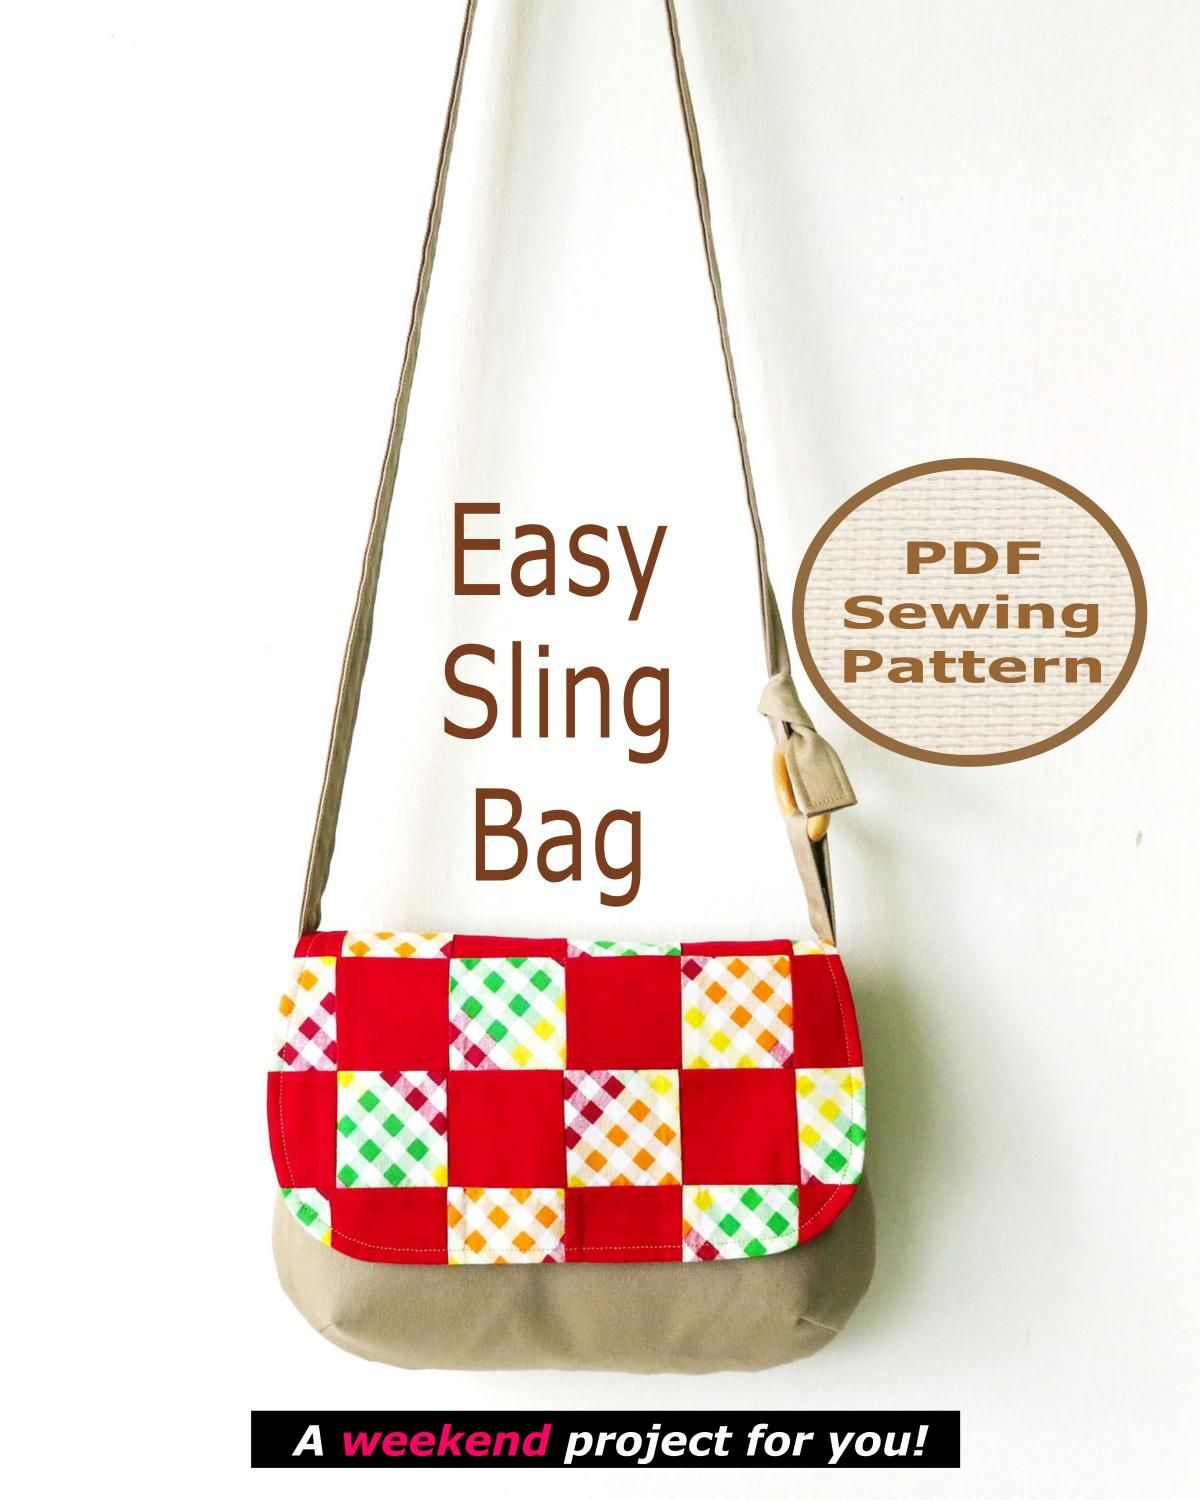 I have needed this type of bag for months! Now I can finally make ...